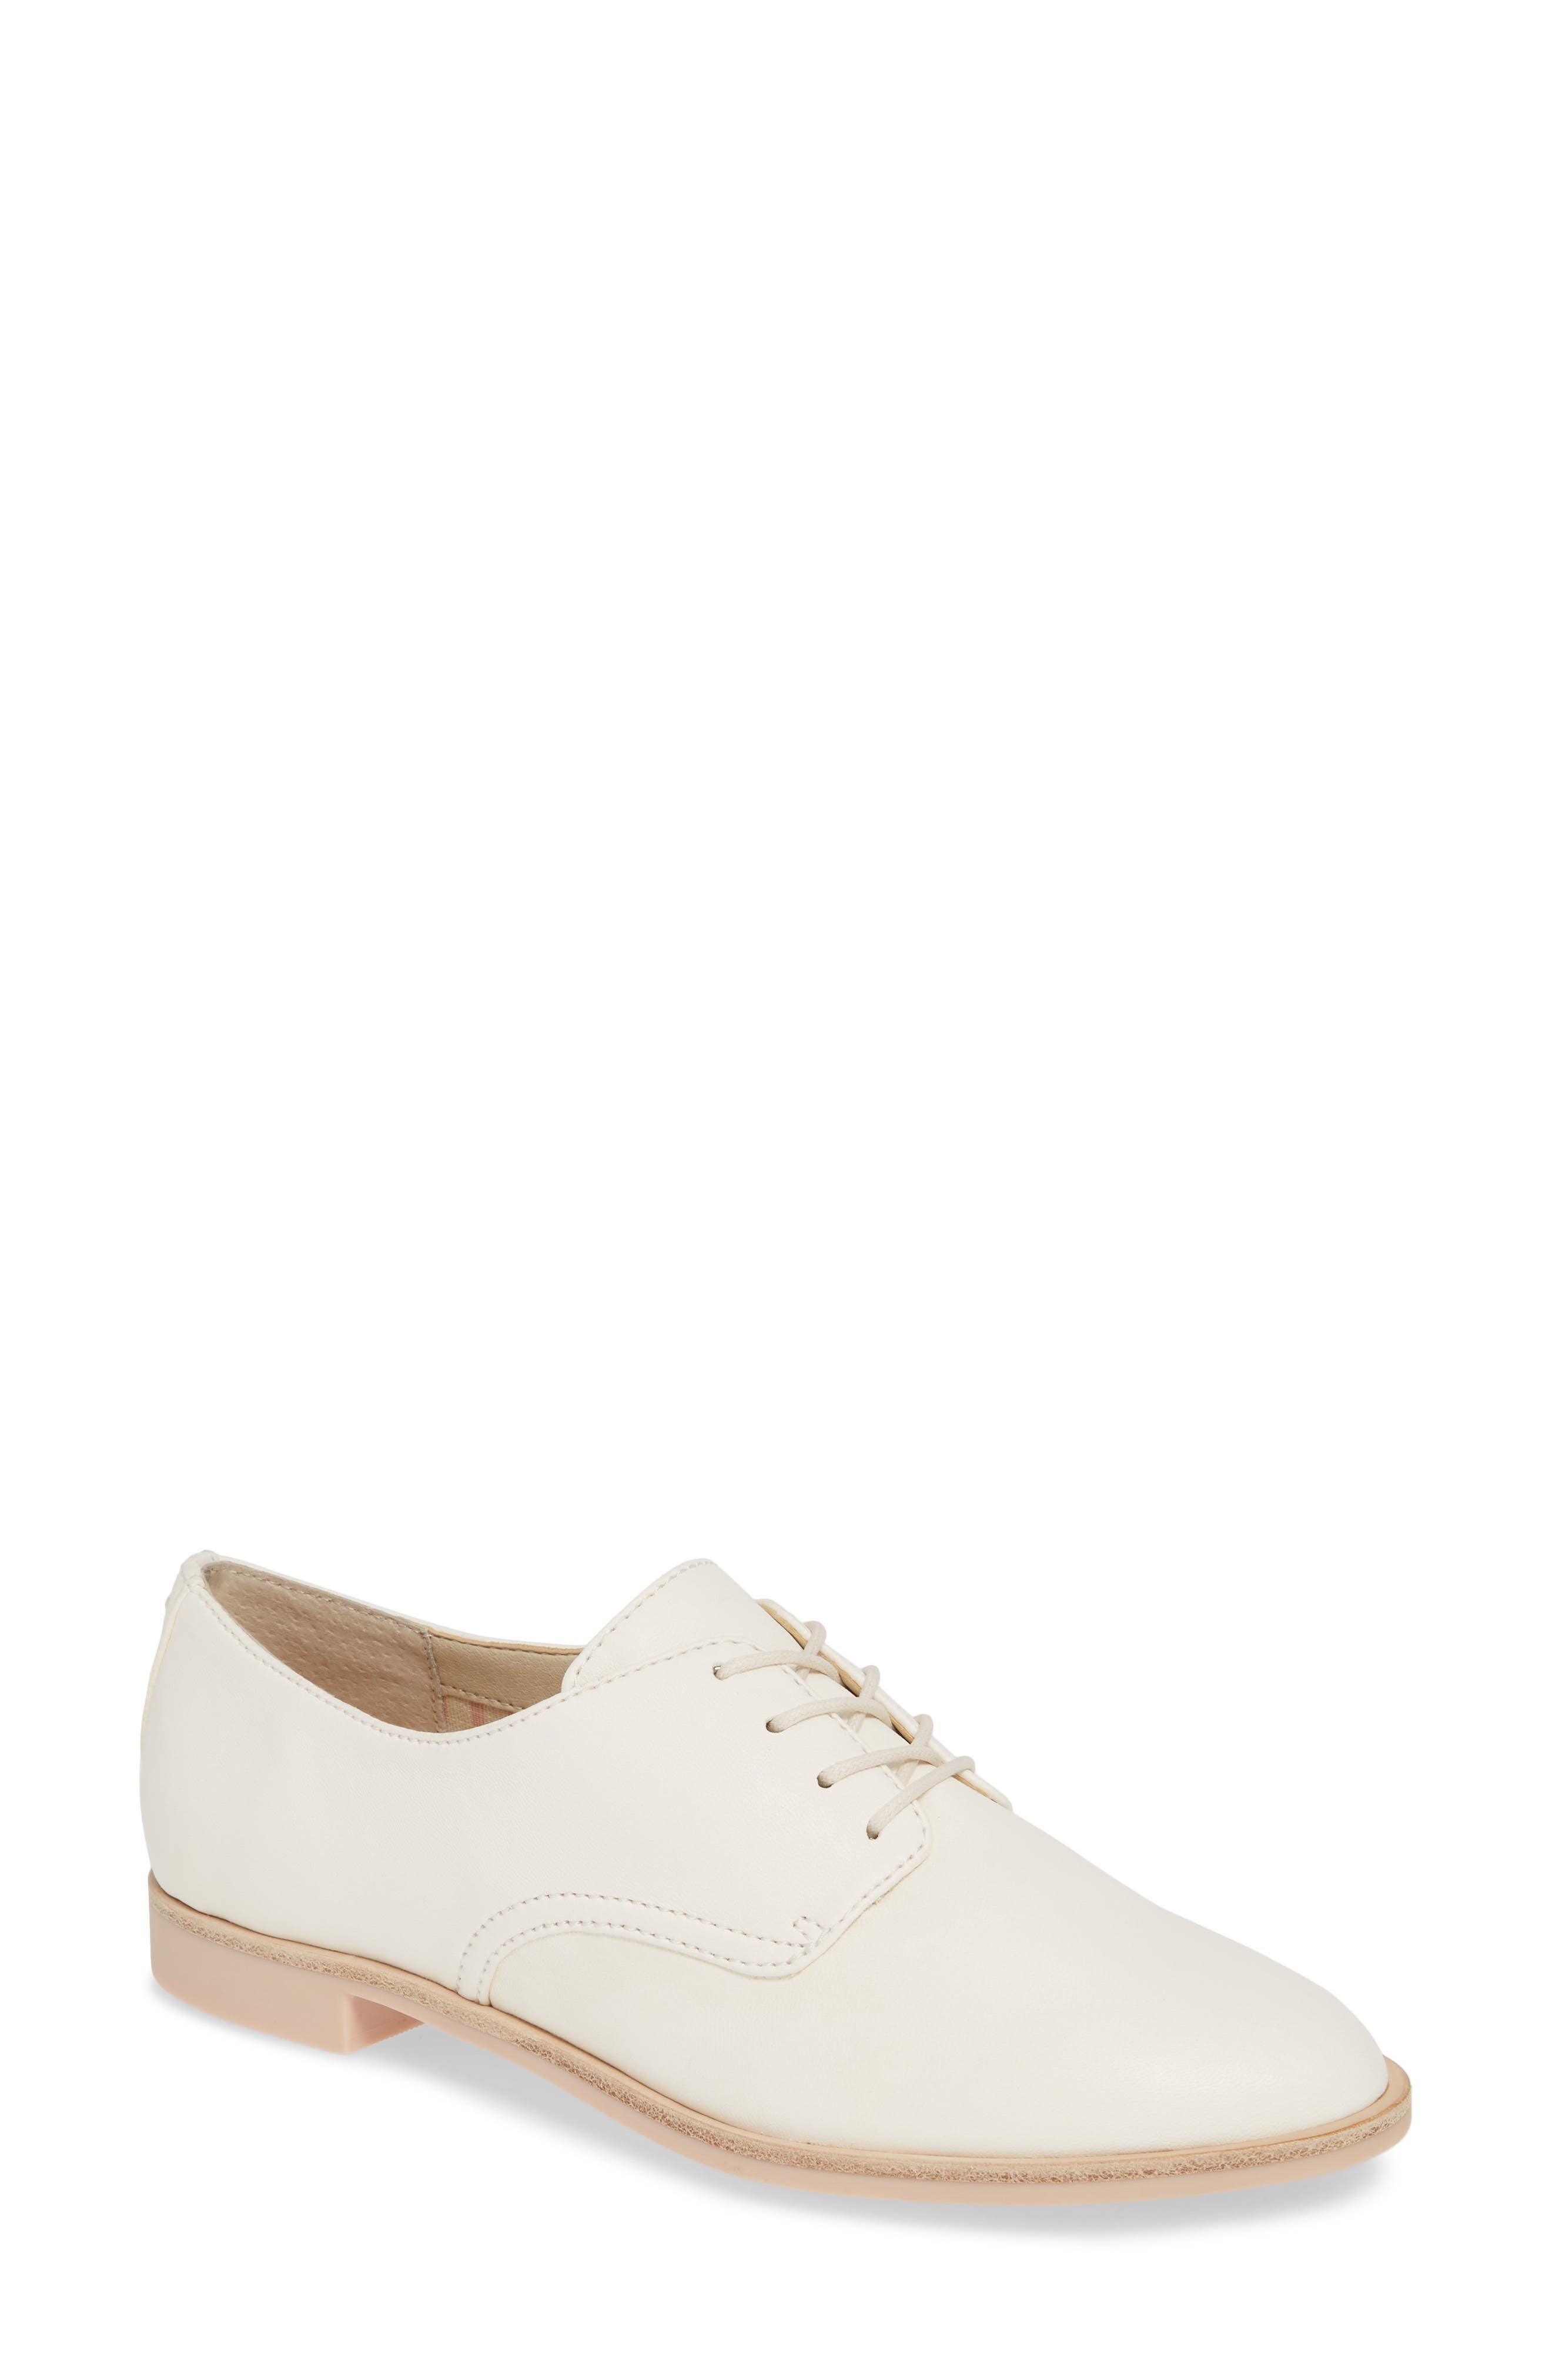 DOLCE VITA, Kyle Derby, Main thumbnail 1, color, OFF WHITE LEATHER